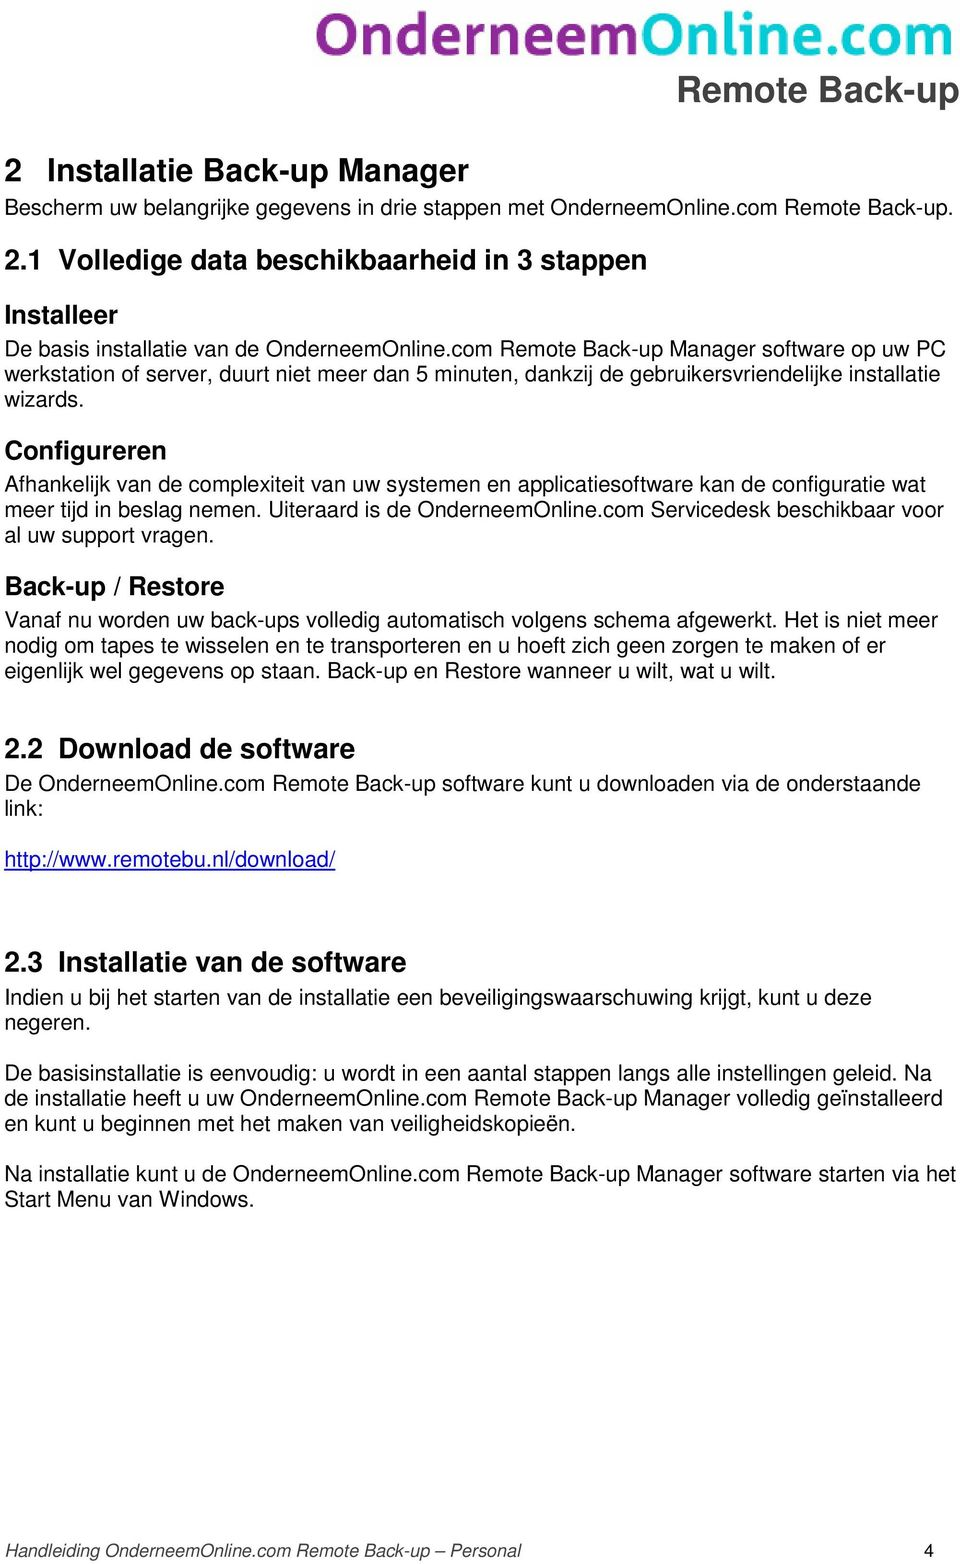 com Remote Back-up Manager software op uw PC werkstation of server, duurt niet meer dan 5 minuten, dankzij de gebruikersvriendelijke installatie wizards.